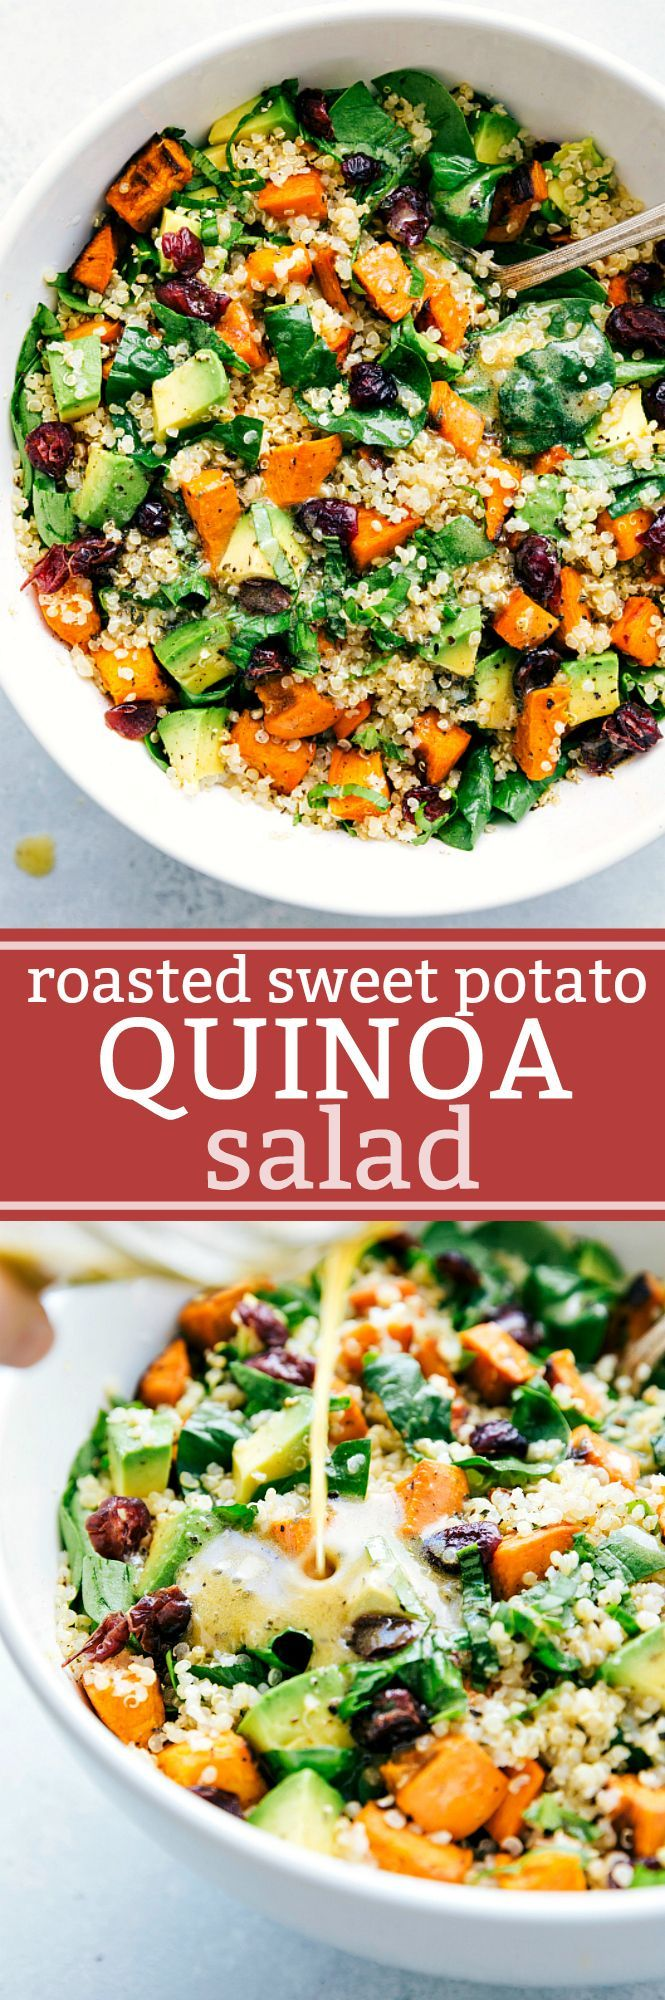 Roasted sweet potato and quinoa salad! Fresh and healthy roasted sweet potato and quinoa salad made with spinach and avocados. A healthy and delicious lemon vinaigrette dressing coats this salad. from chelseasmessyapron.com